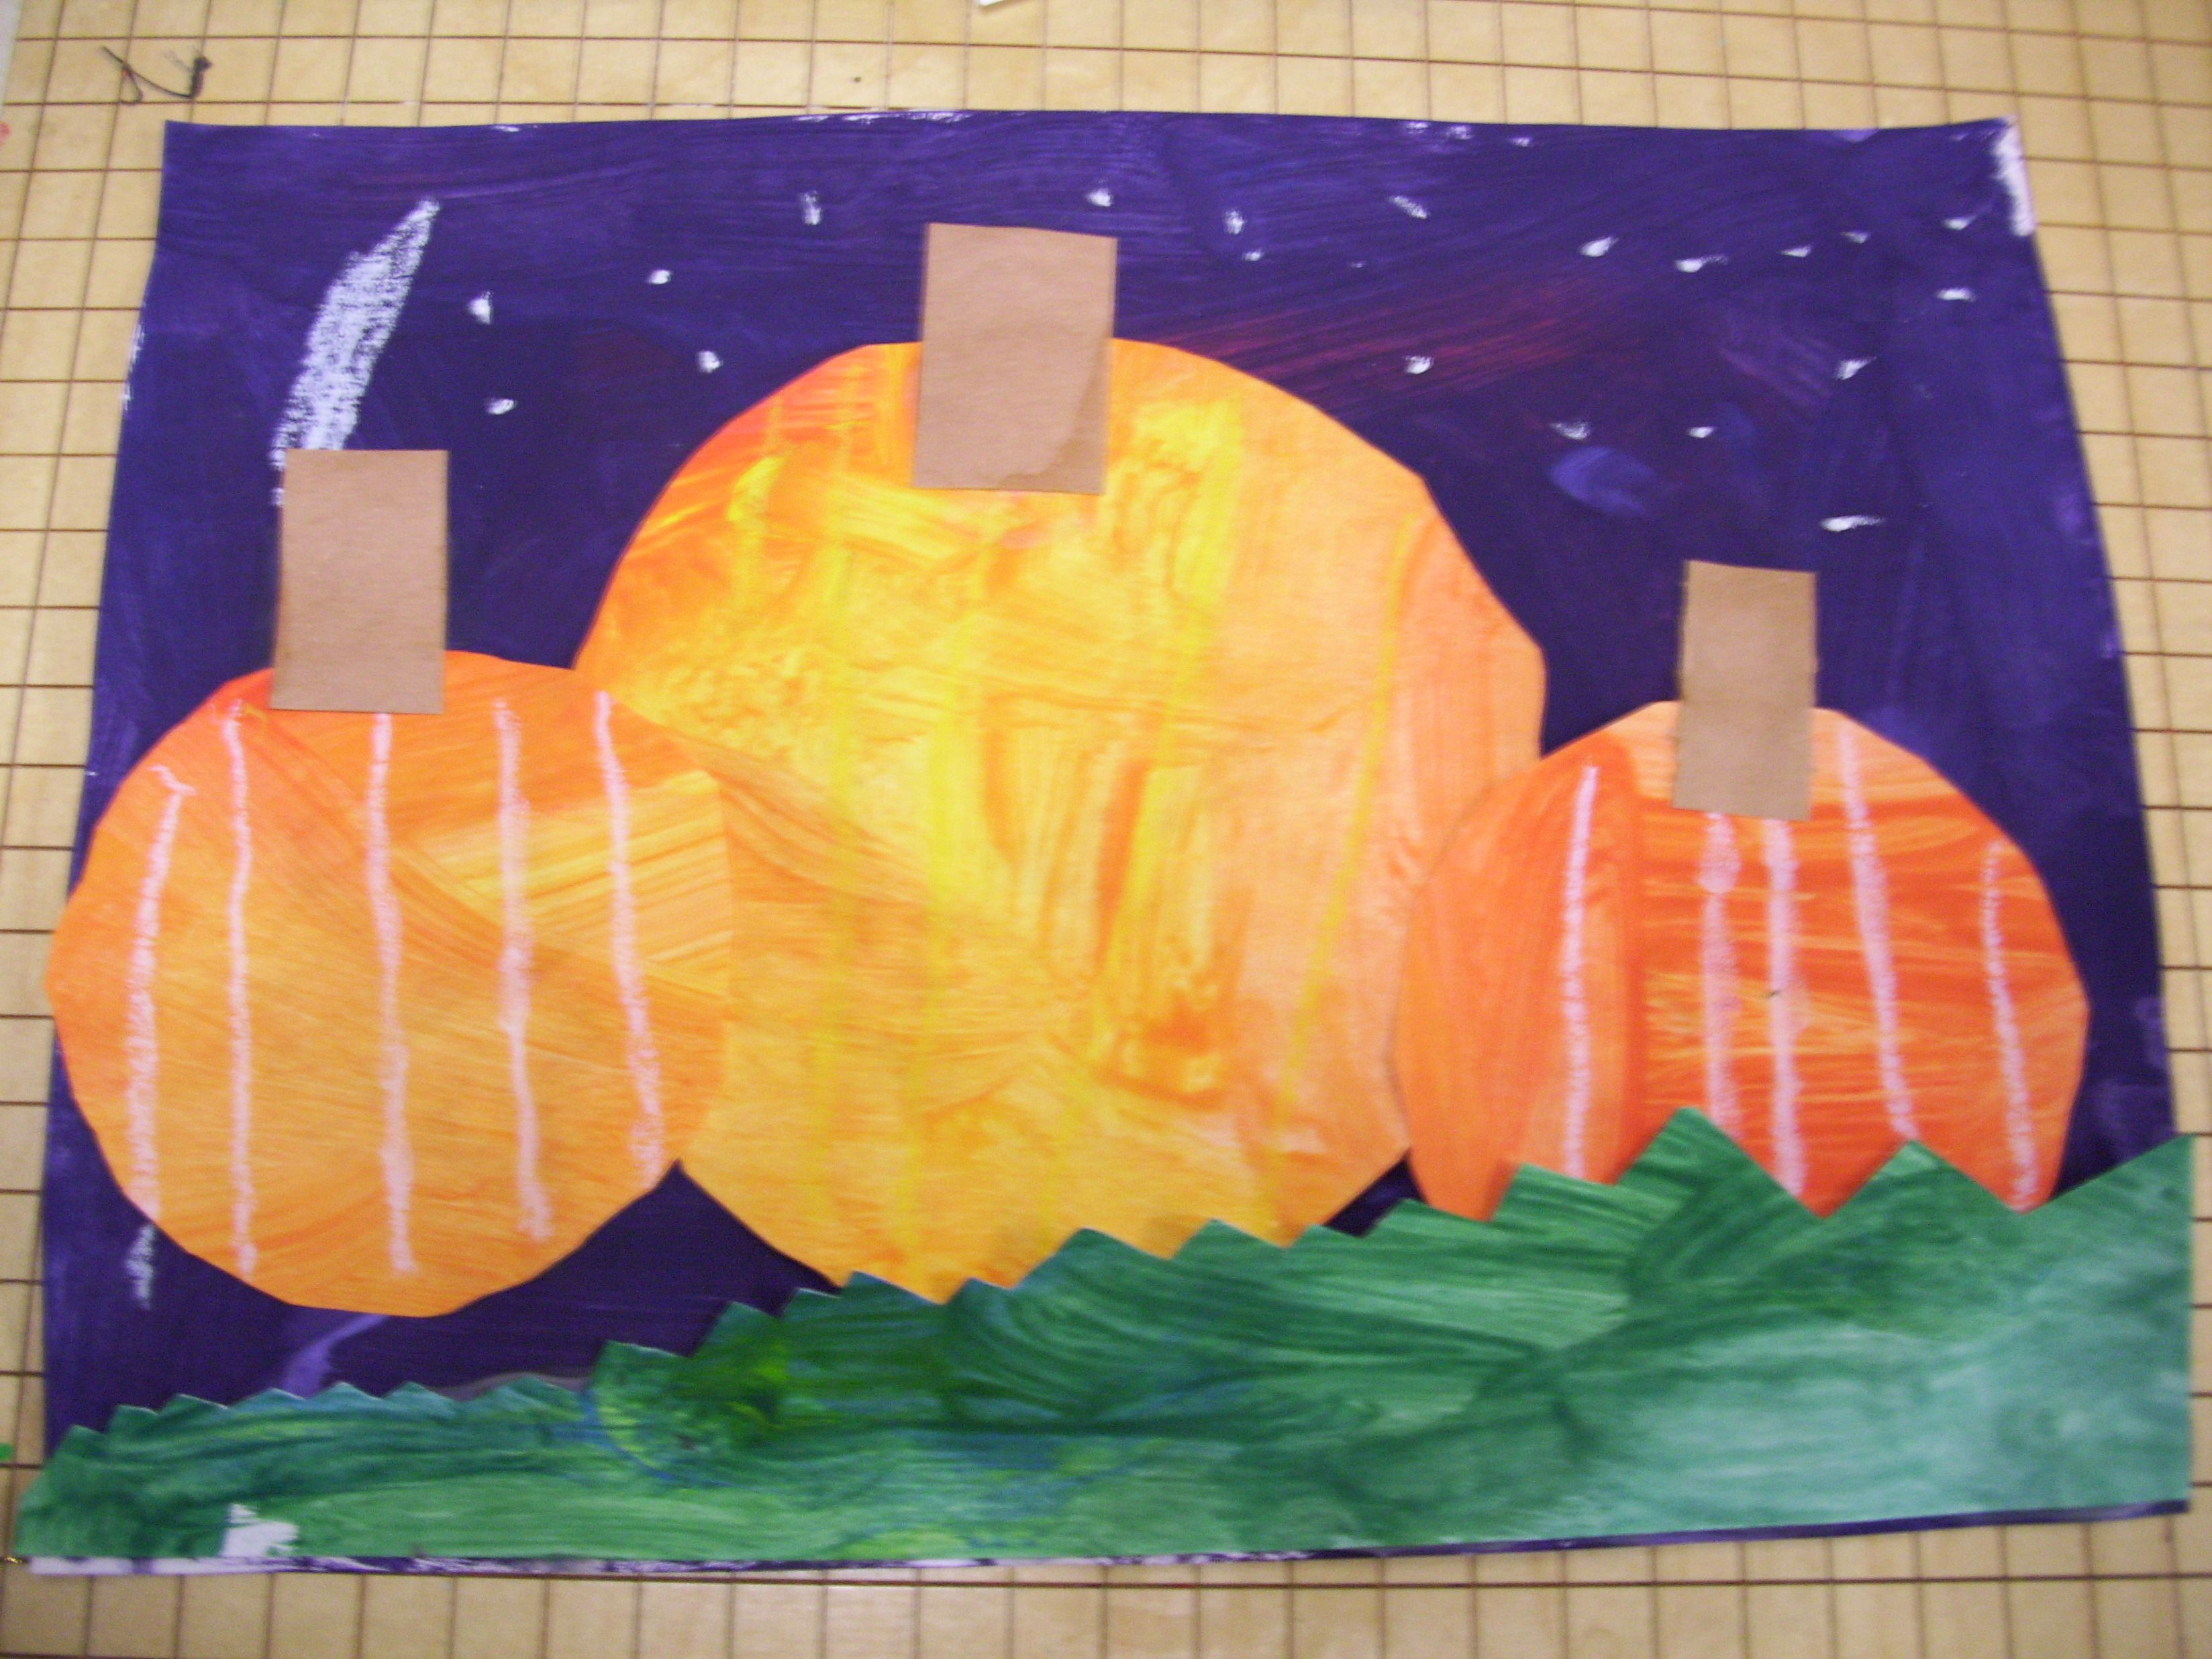 Color mixing, secondary colors, collage, Fall pumpkin picture ...